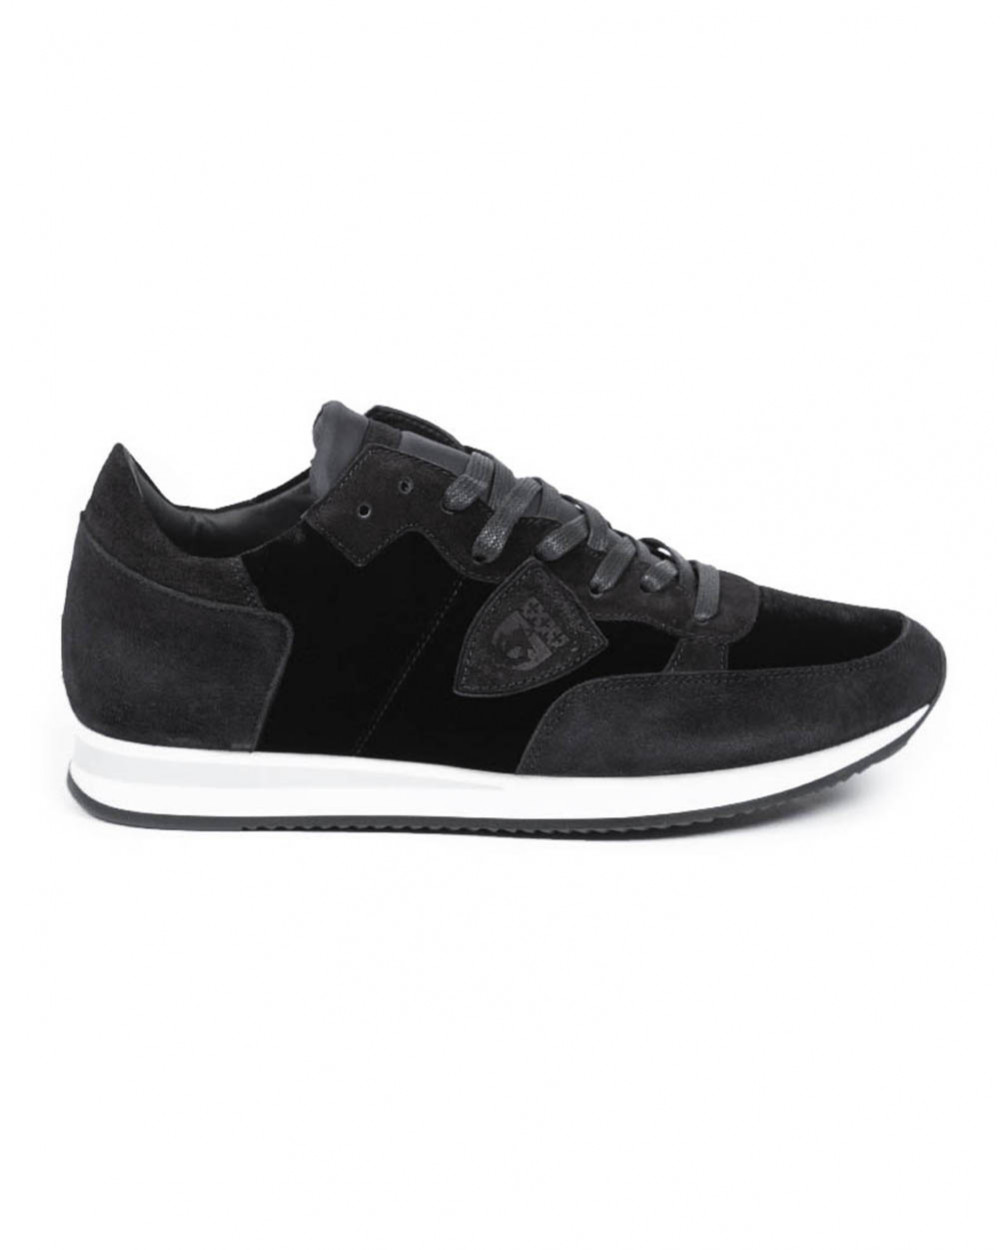 """Sneakers Philippe Model """"Tropez"""" black with white sole for men"""